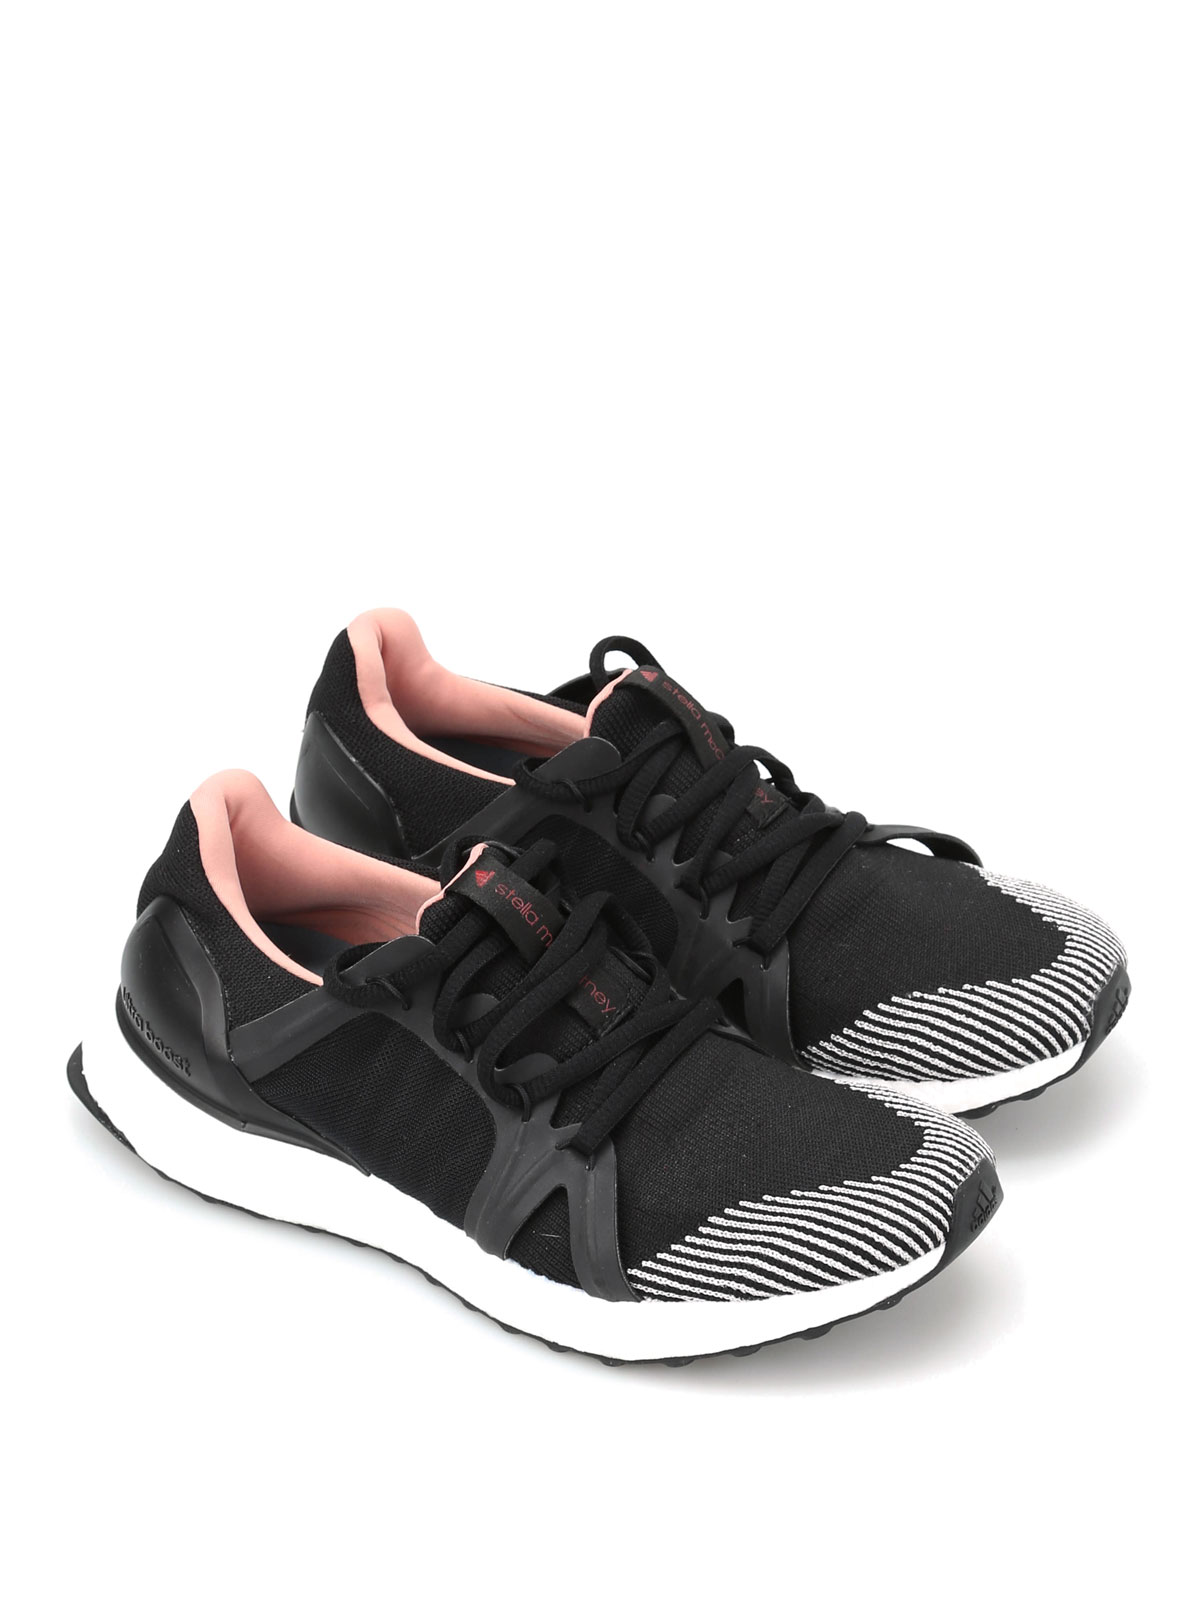 5c8e267ce97a6 ADIDAS BY STELLA MCCARTNEY  trainers online - Ultra Boost running shoes